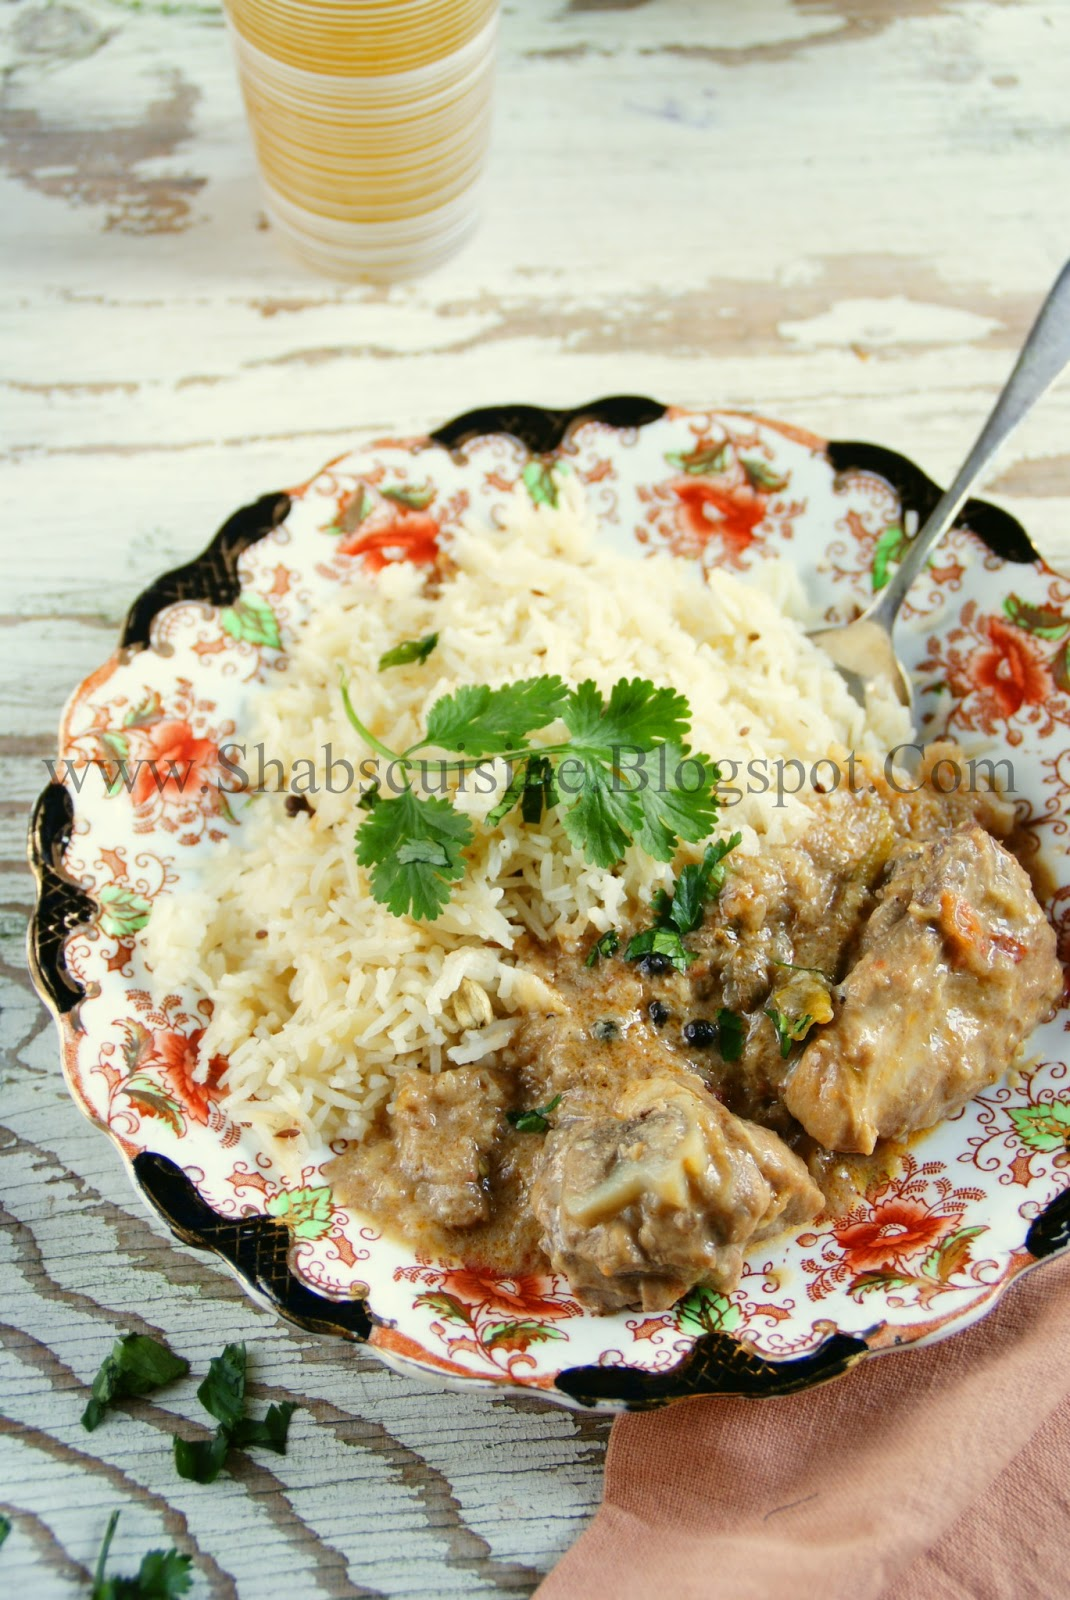 Shab 39 s cuisine kerala chicken stew two recipes for Appam and chicken stew kerala cuisine